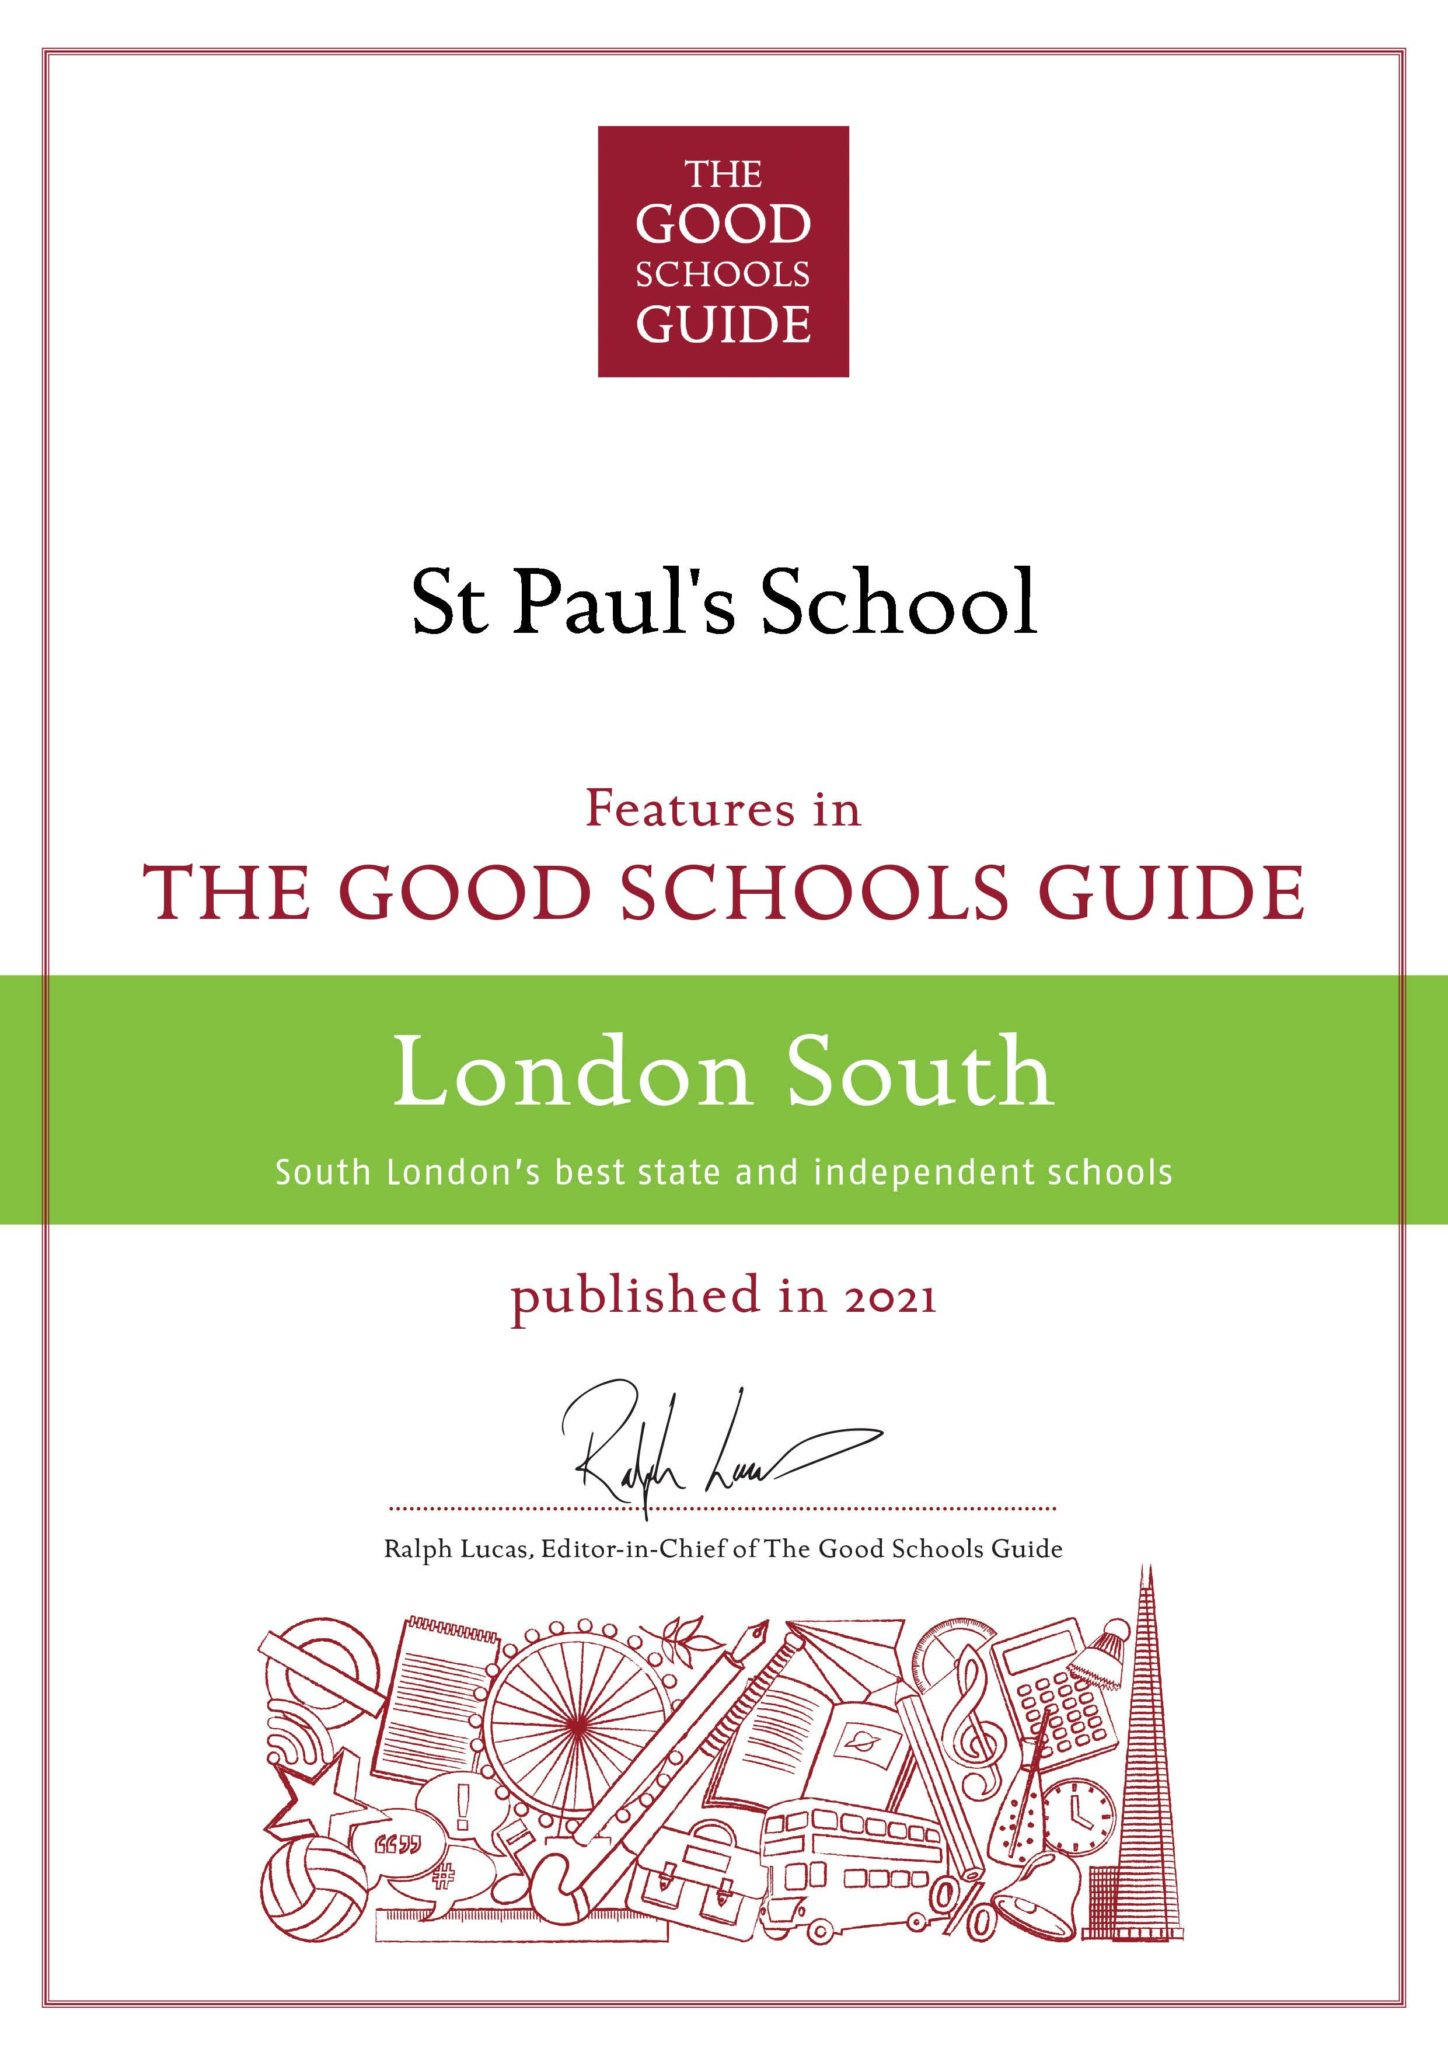 st-pauls-school_GSG_London_South jpeg